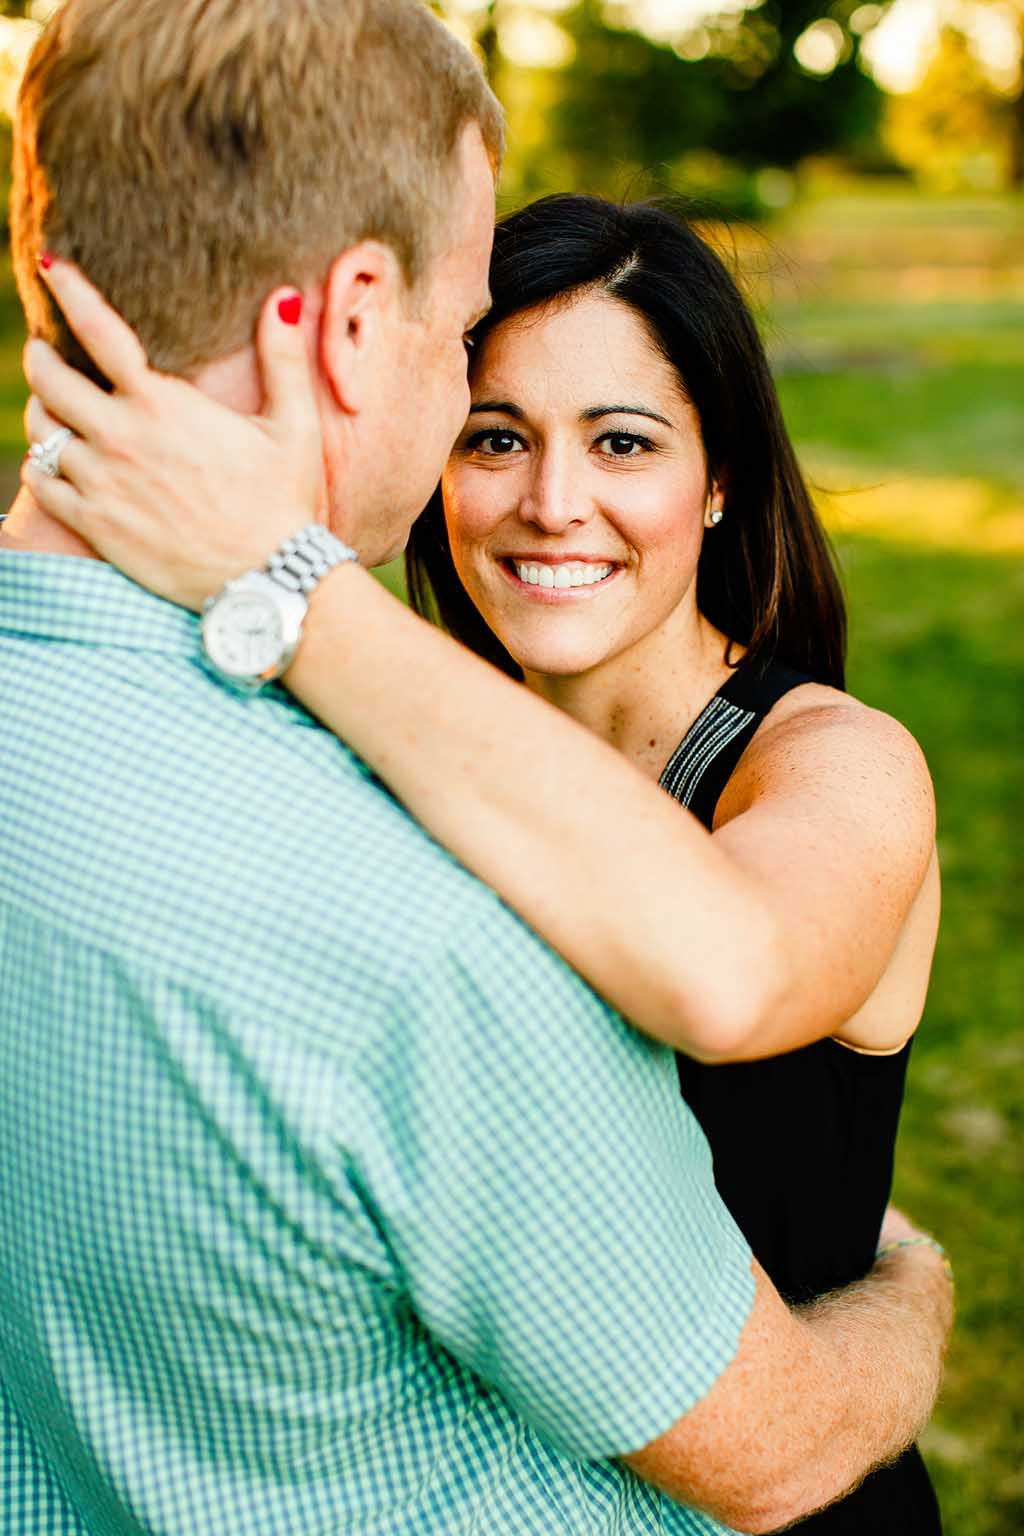 Clayton / Oak Knoll Park Engagement Photos by Oldani Photography St. Louis Wedding PhotographersClayton / Oak Knoll Park Engagement Photos by Oldani Photography St. Louis Wedding Photographers